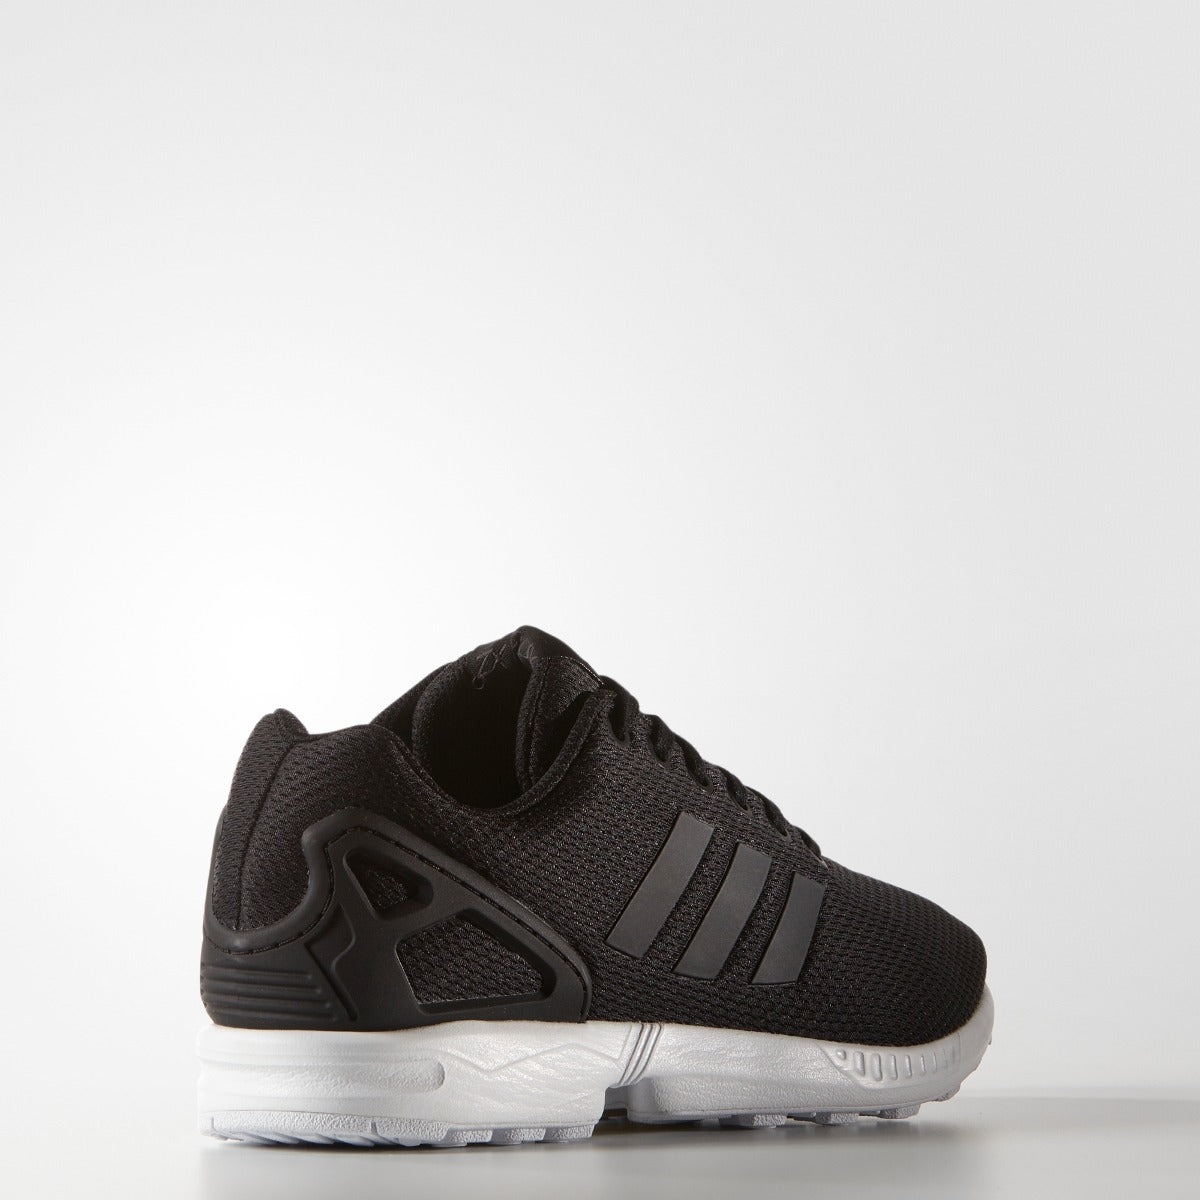 c3b5dd4efce Men s adidas Originals ZX Flux Shoes Core Black White. 1